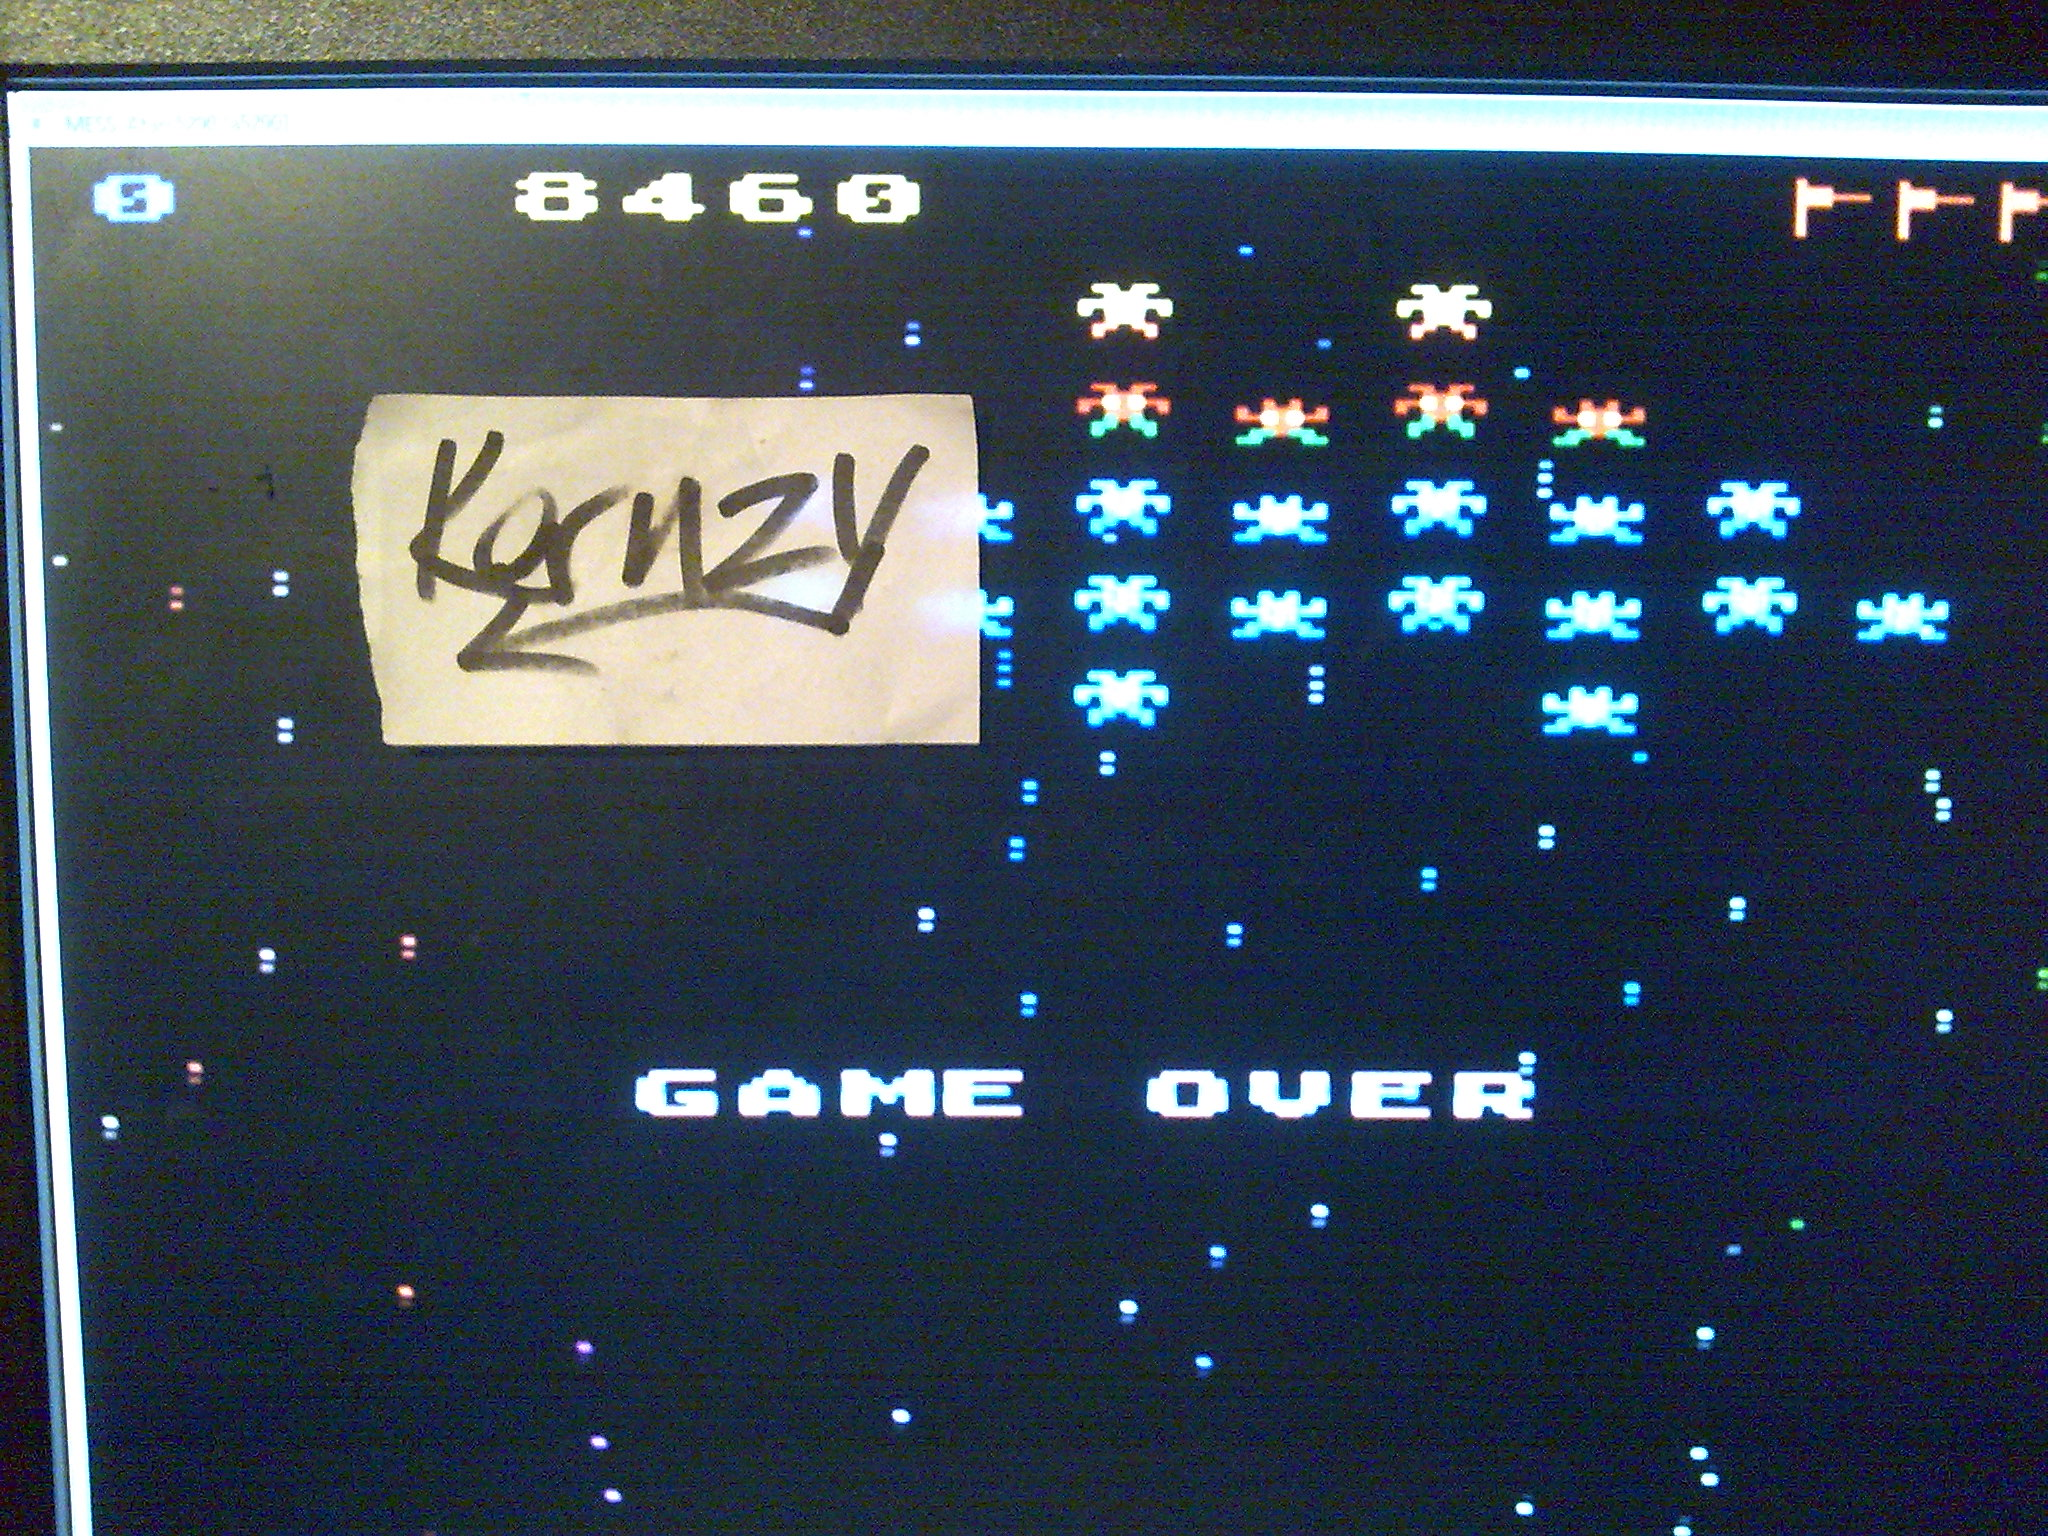 kernzy: Galaxian: Skill Level 1 (Atari 5200 Emulated) 8,460 points on 2014-10-08 11:42:45